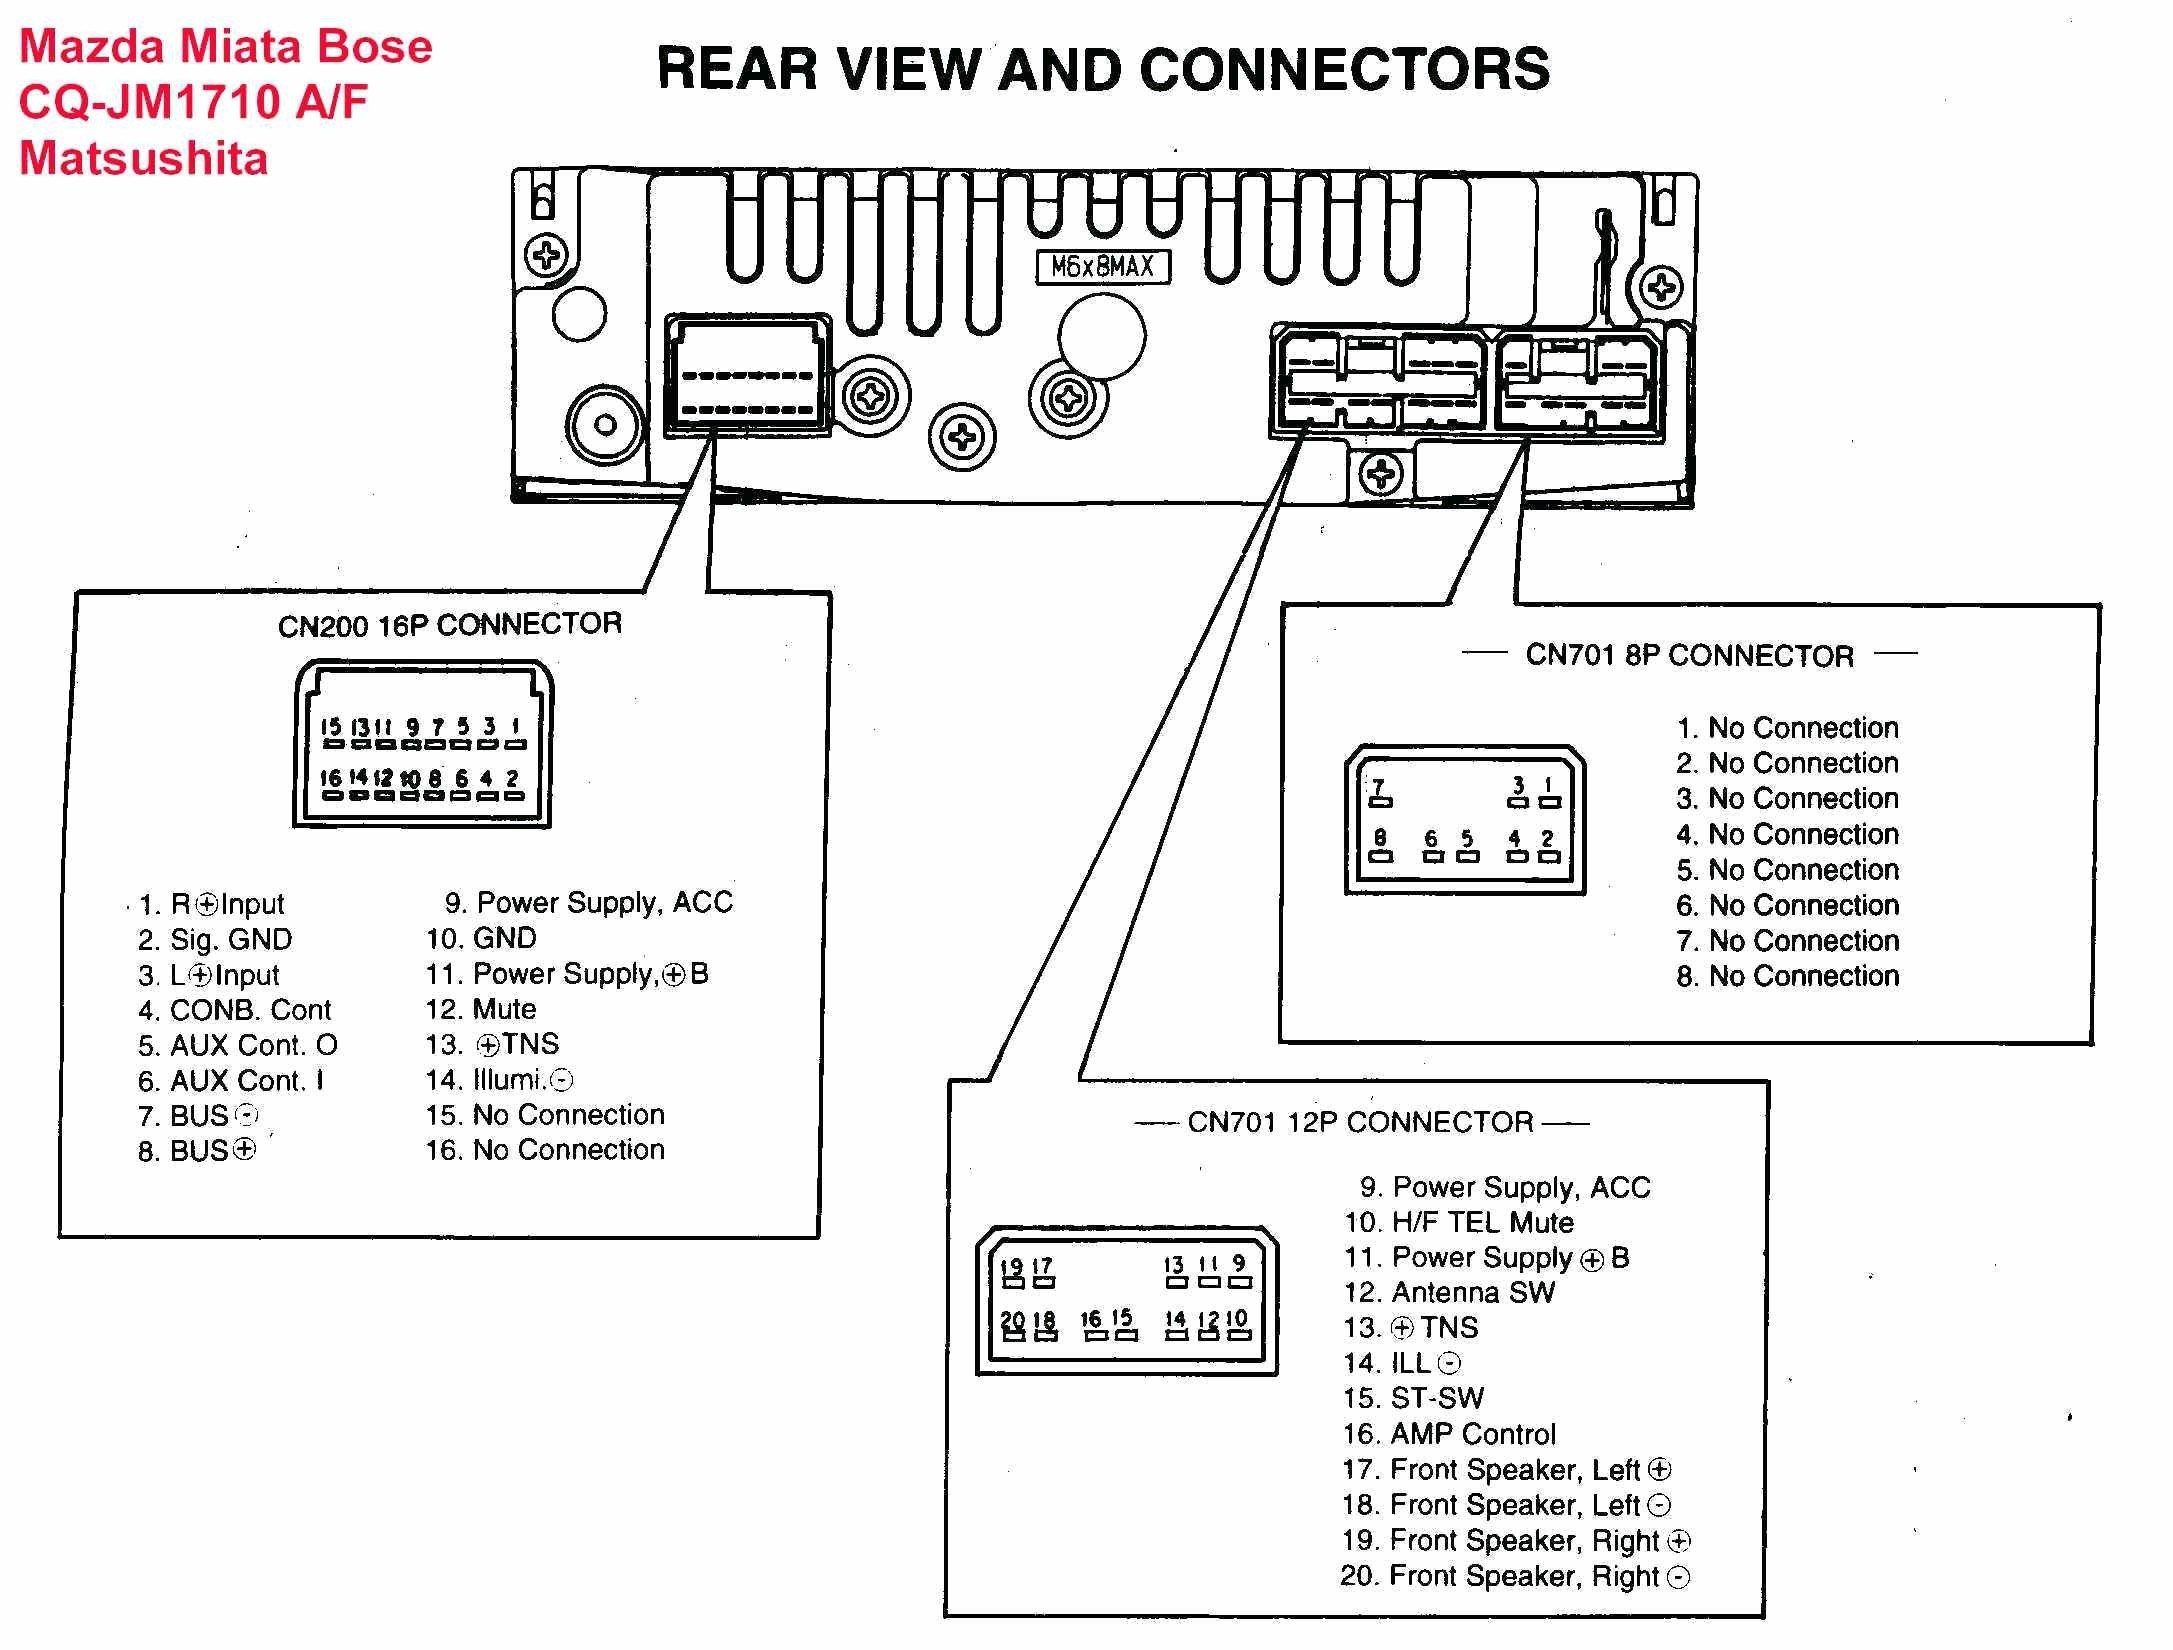 Car Audio Setup Diagram sony Stereo Wiring Diagram Wiring Diagram Datasource Of Car Audio Setup Diagram